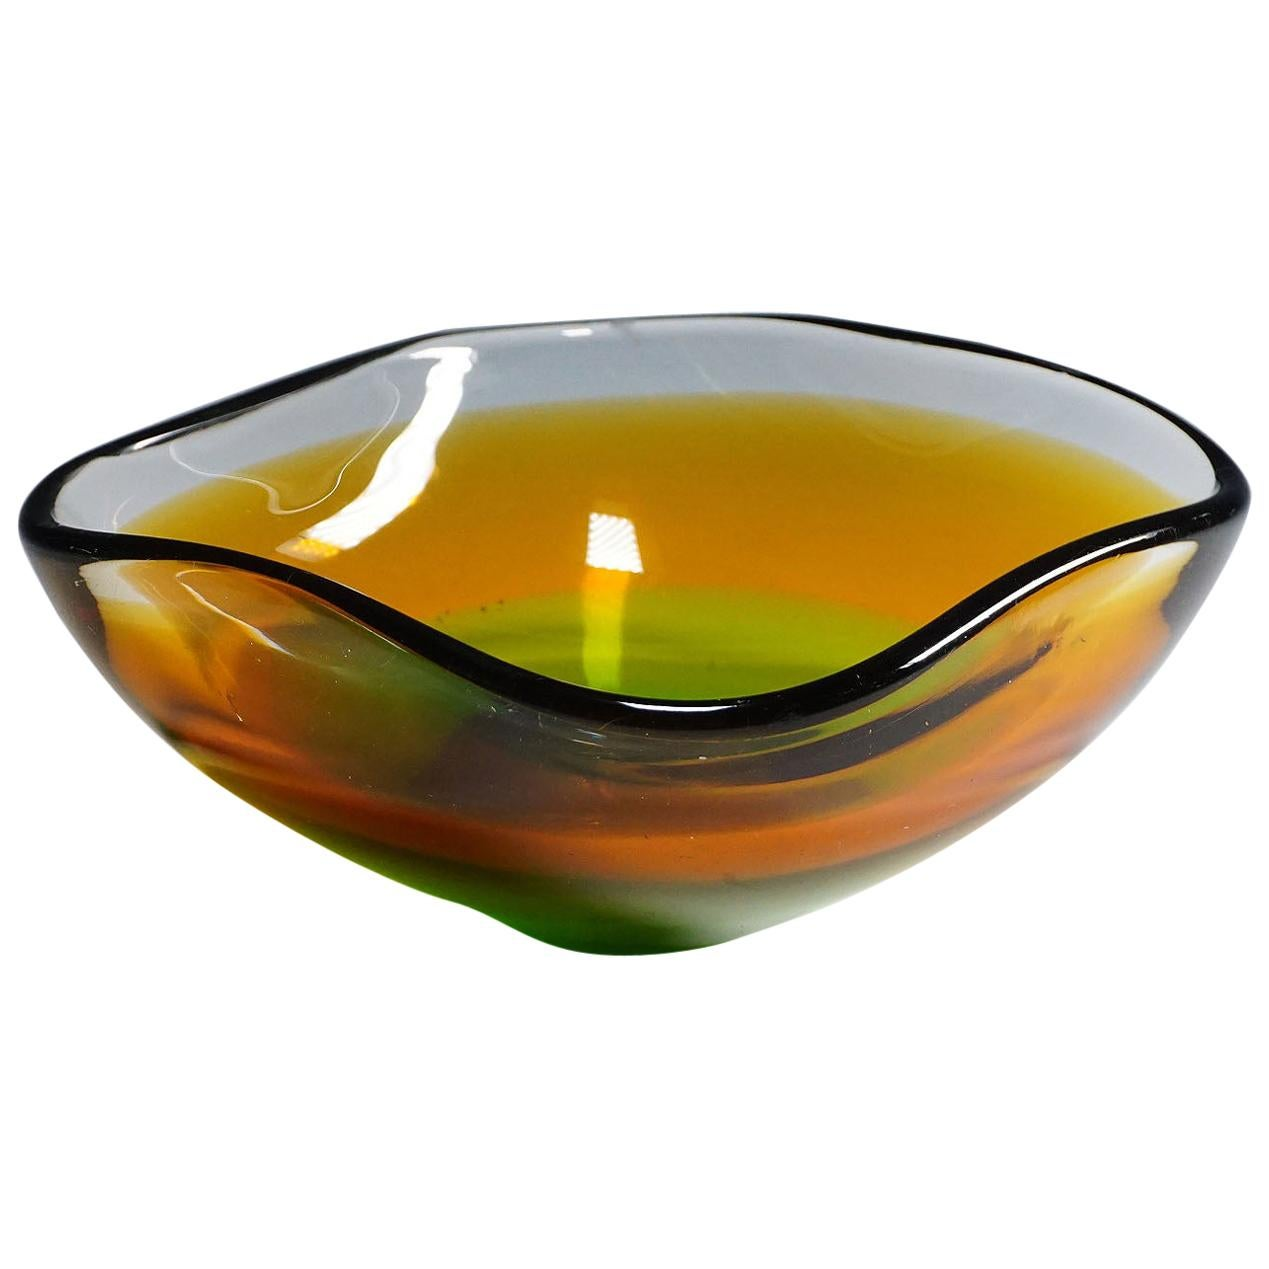 Seguso Vetri d'Arte 'Attributed' Murano Art Glass Bowl, 1950s